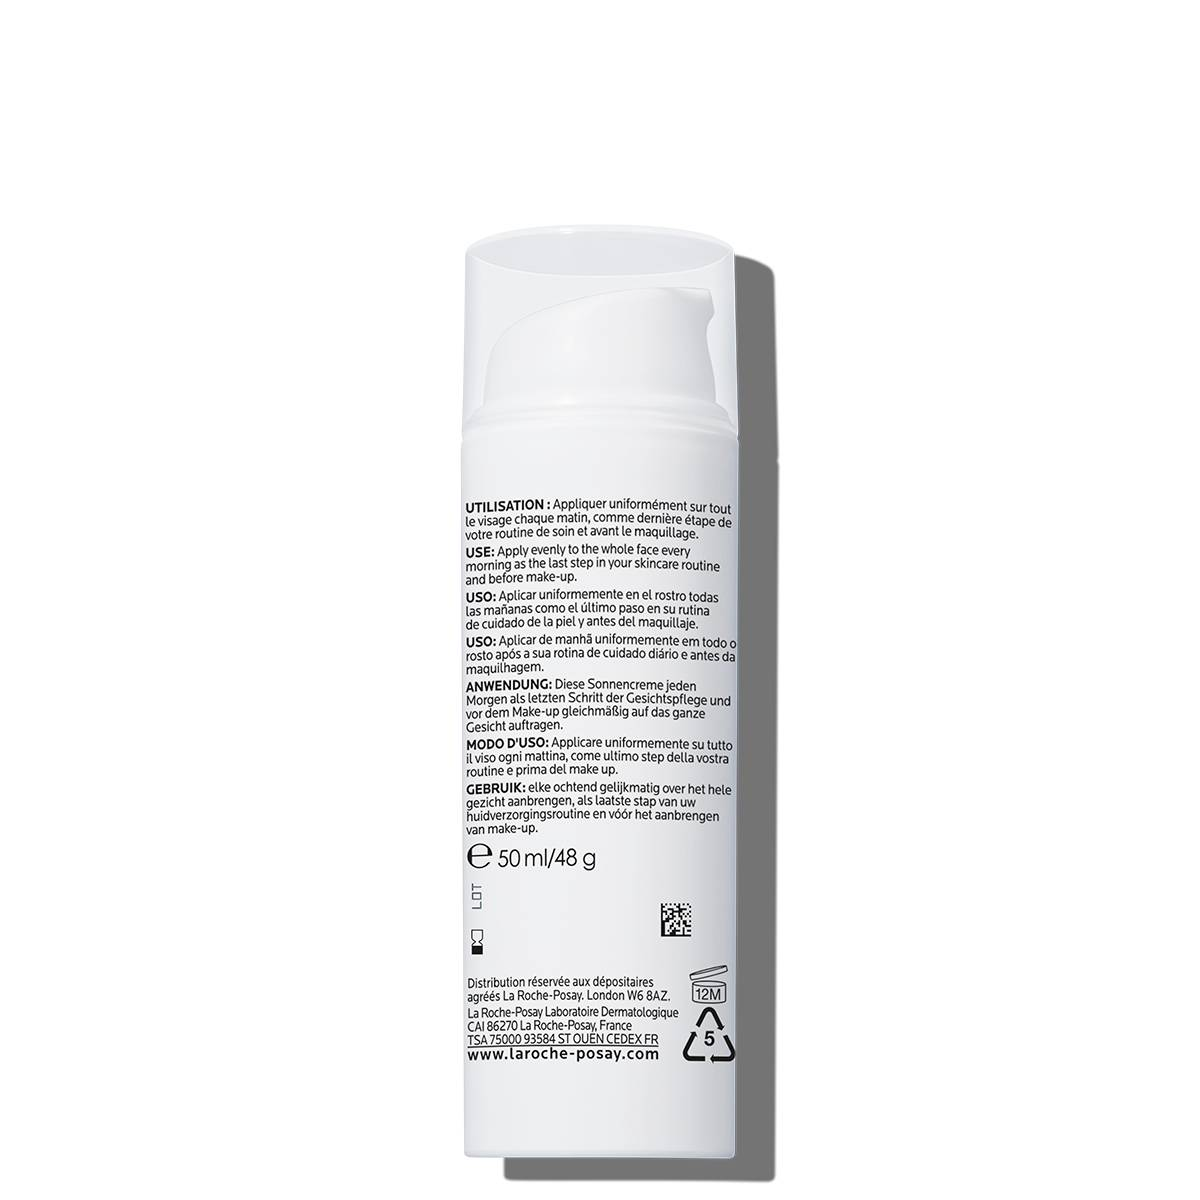 La-Roche-Posay-Anthelios-Age-Correct-SPF50-50ml-NoTeinted-LD-000-3337875761031-Closed-BSS